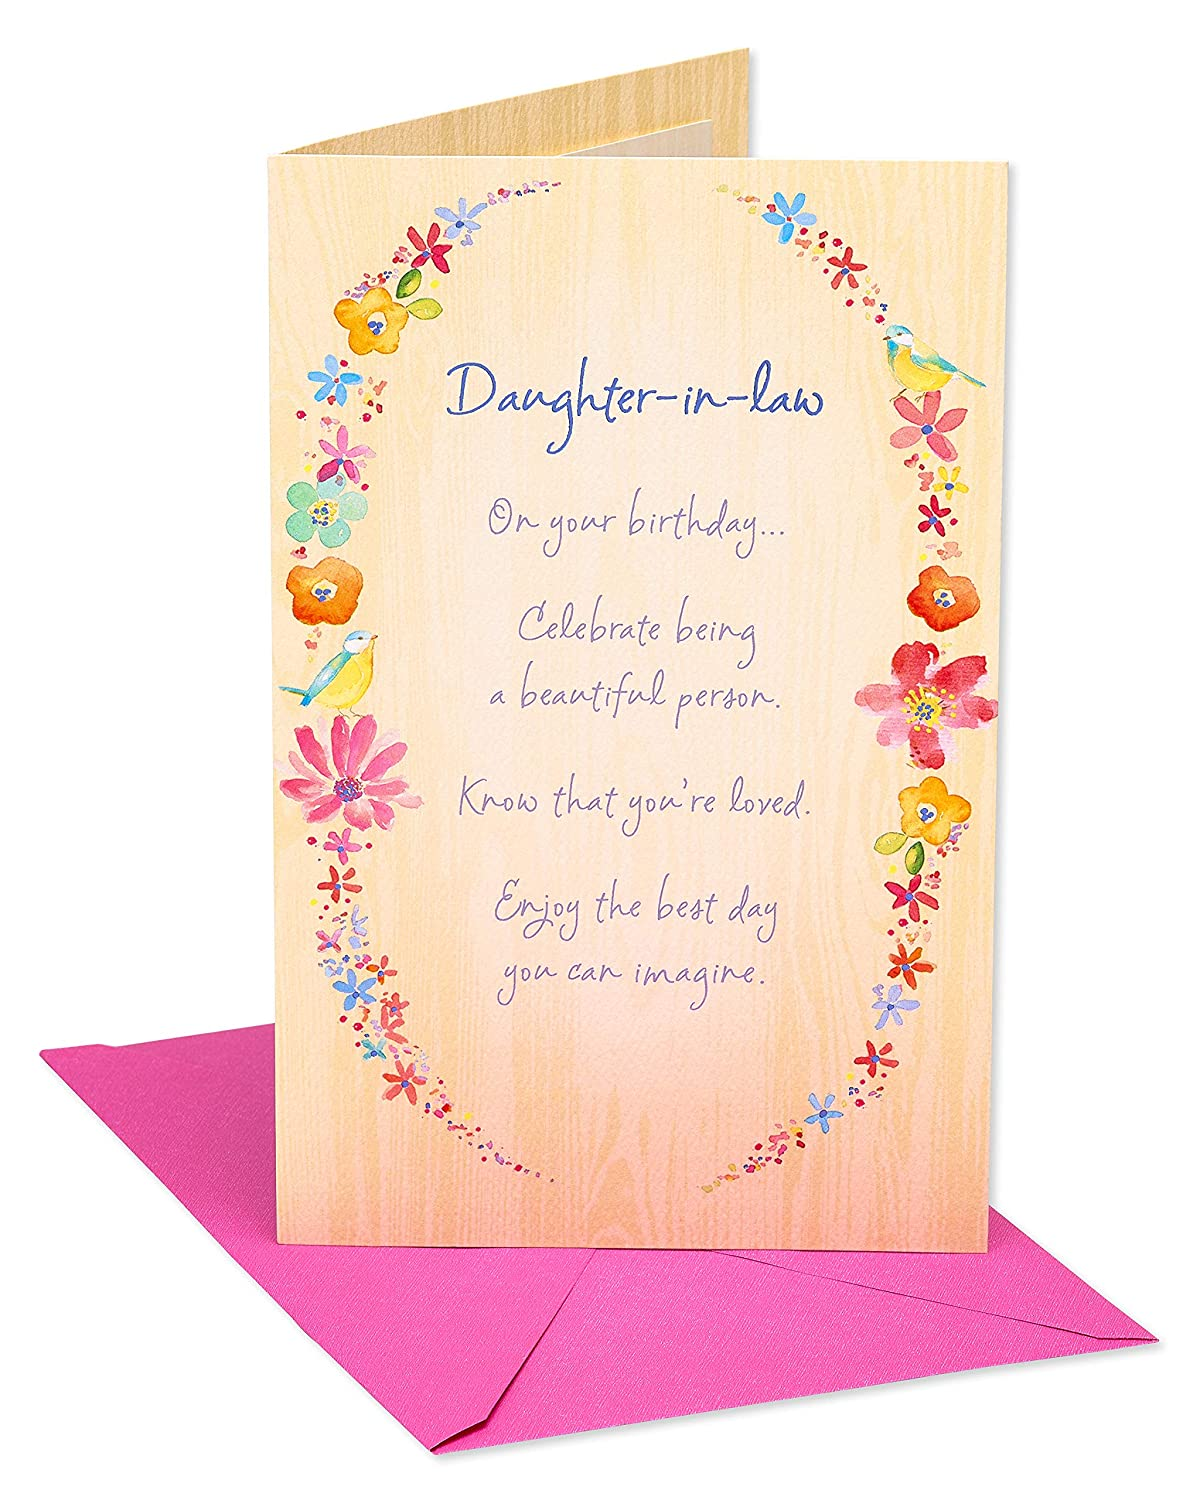 Amazon Moments Birthday Card For Daughter In Law With Foil Office Products